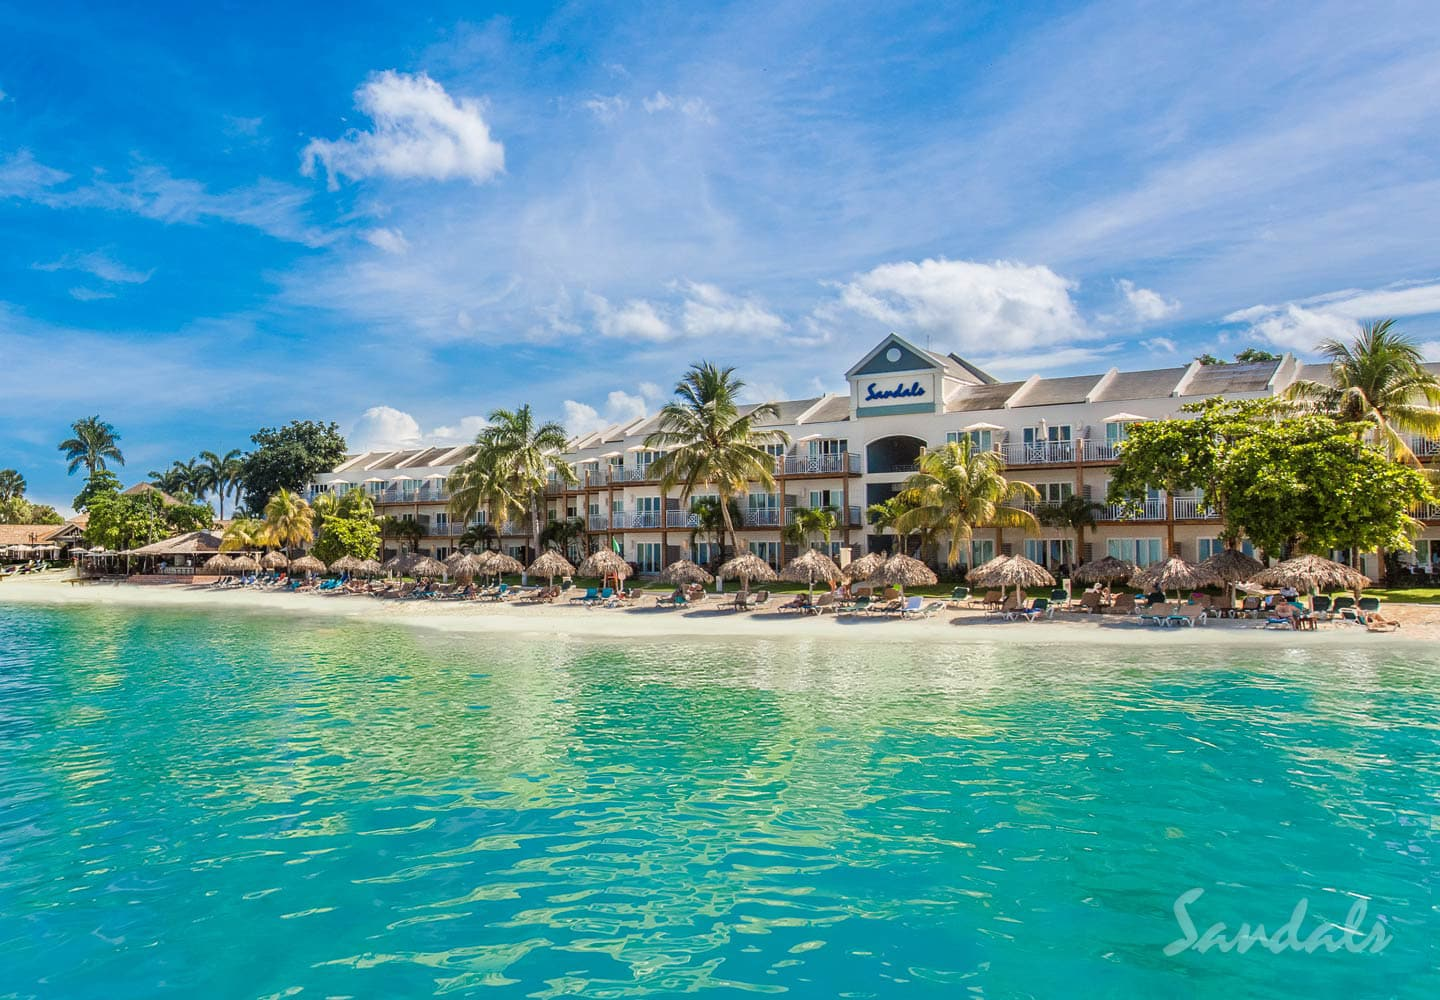 sandy beach with blue ocean water in front of the Sandals Negril beach resort in Jamaica, part of our Sandals vacation deals